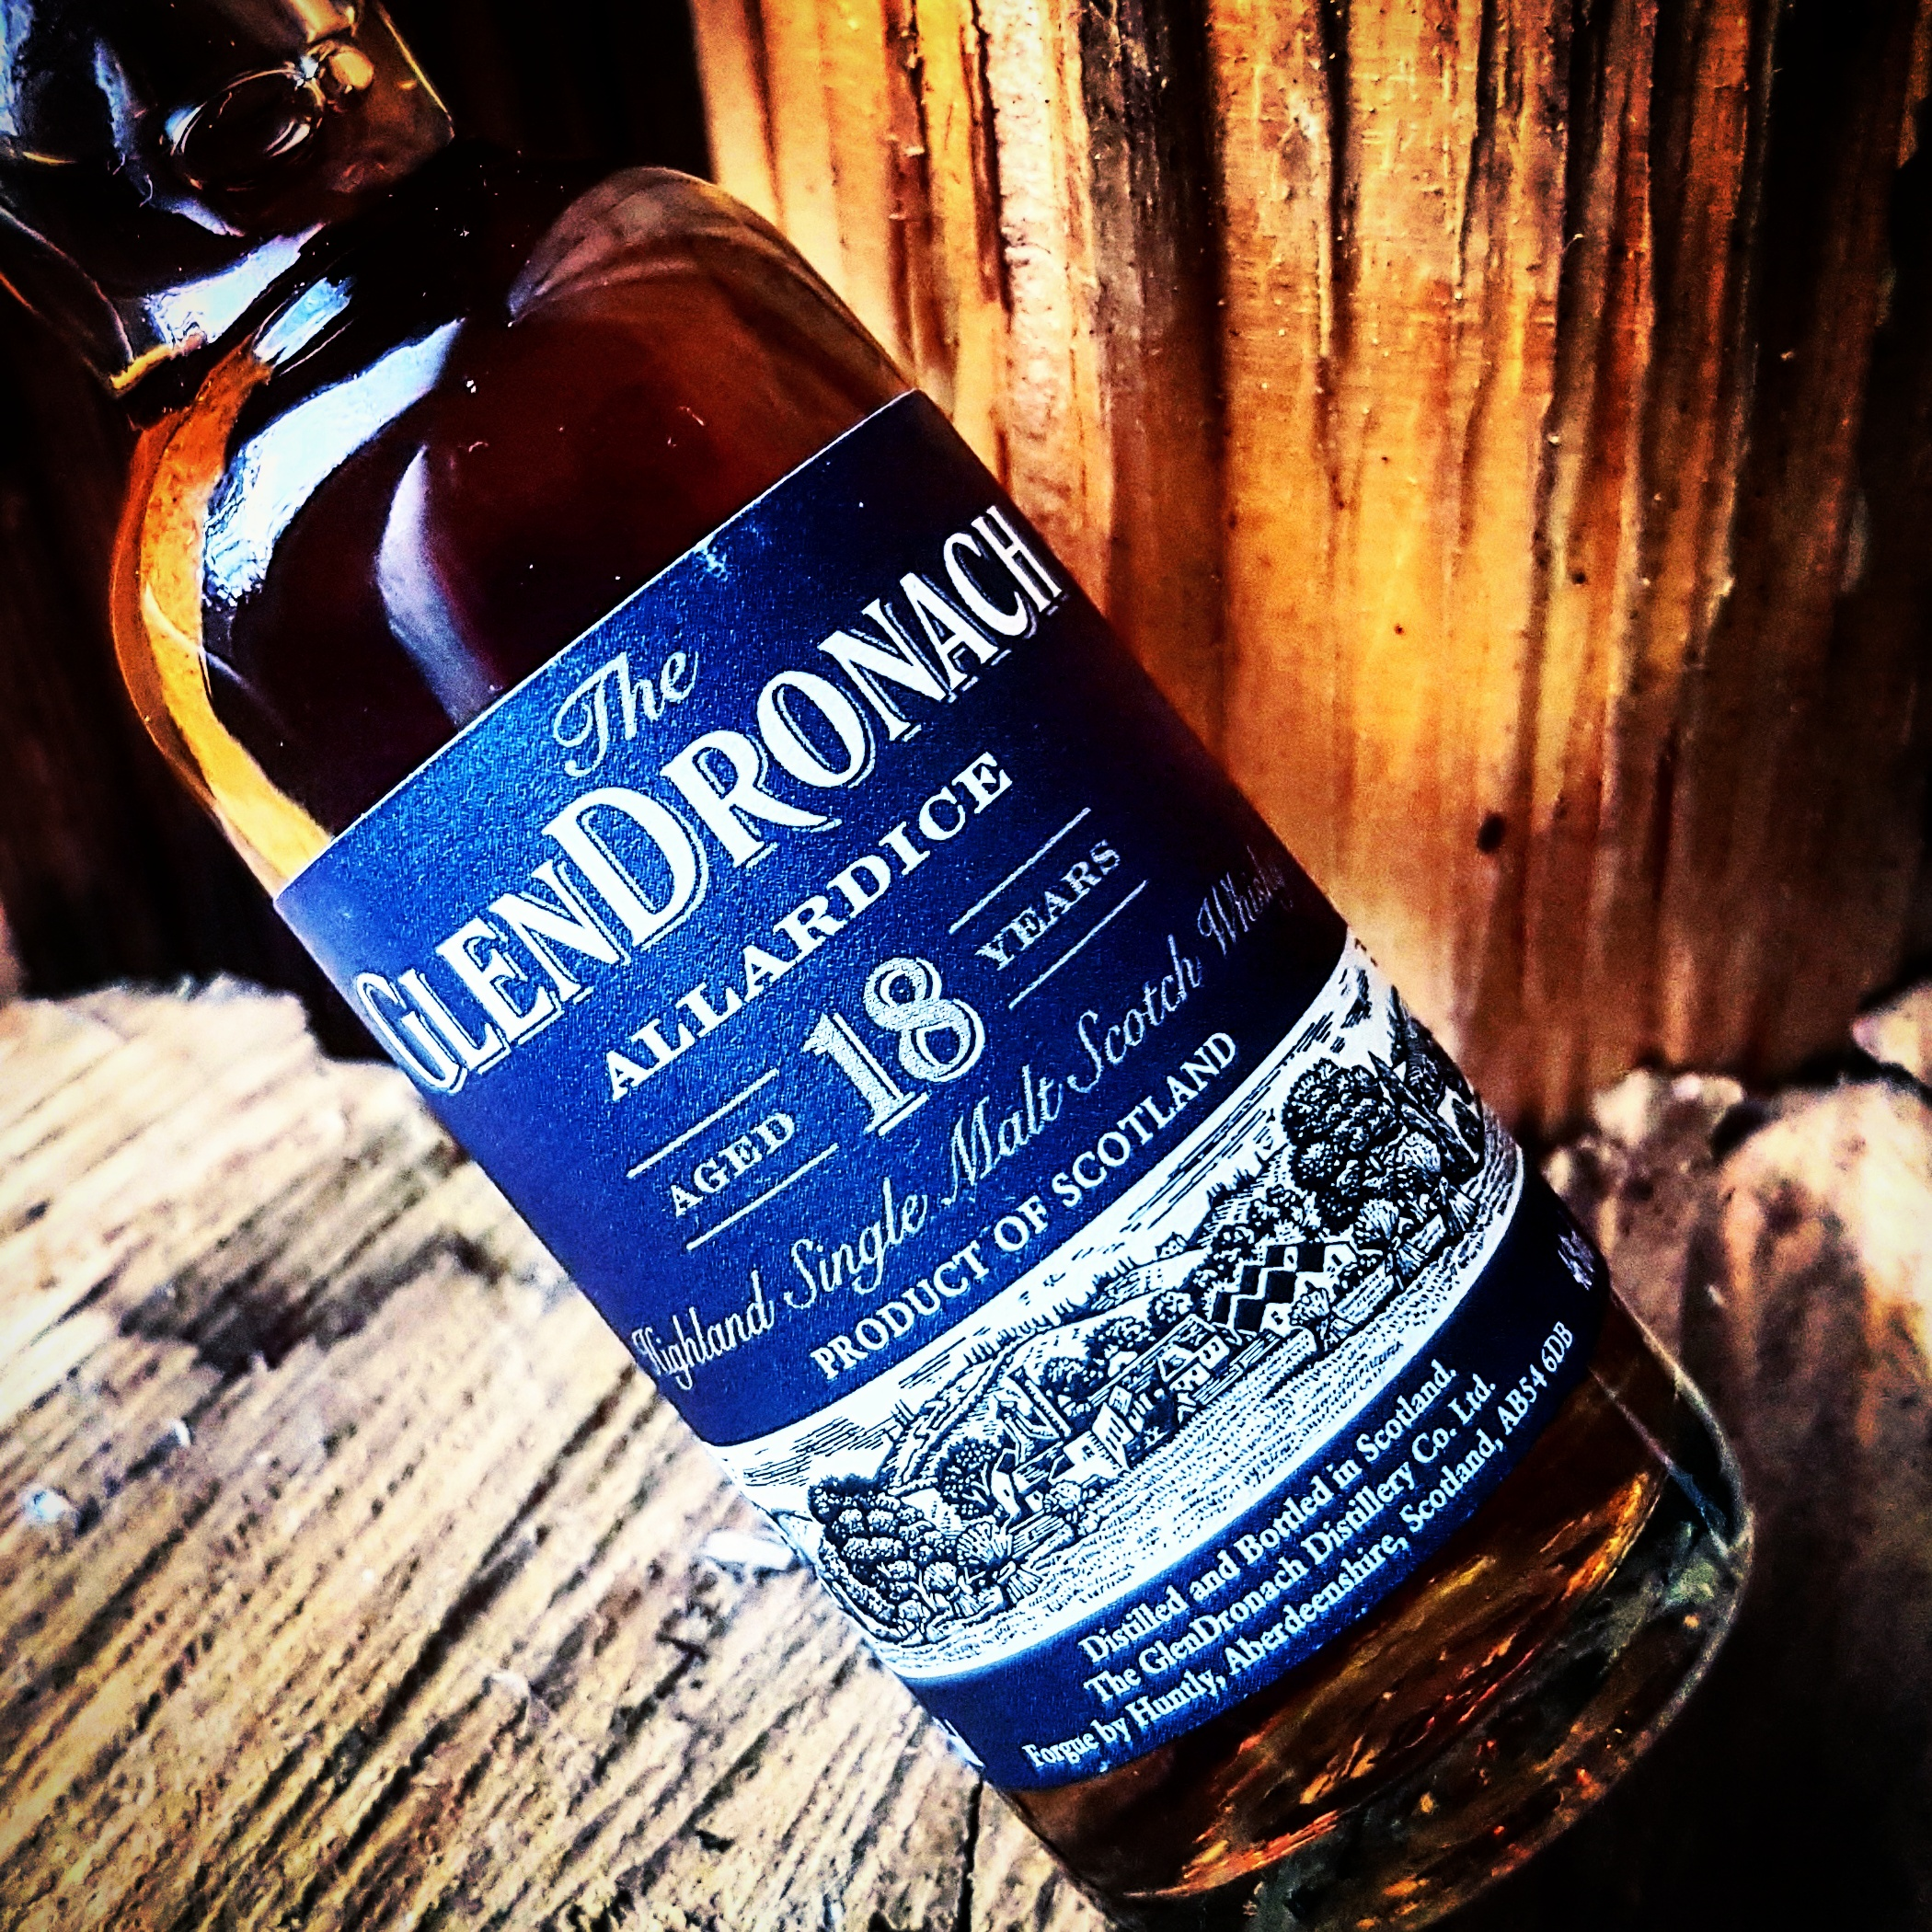 The GlenDronach Allardice 18 Jahre Highland Single Malt Scotch Whisky